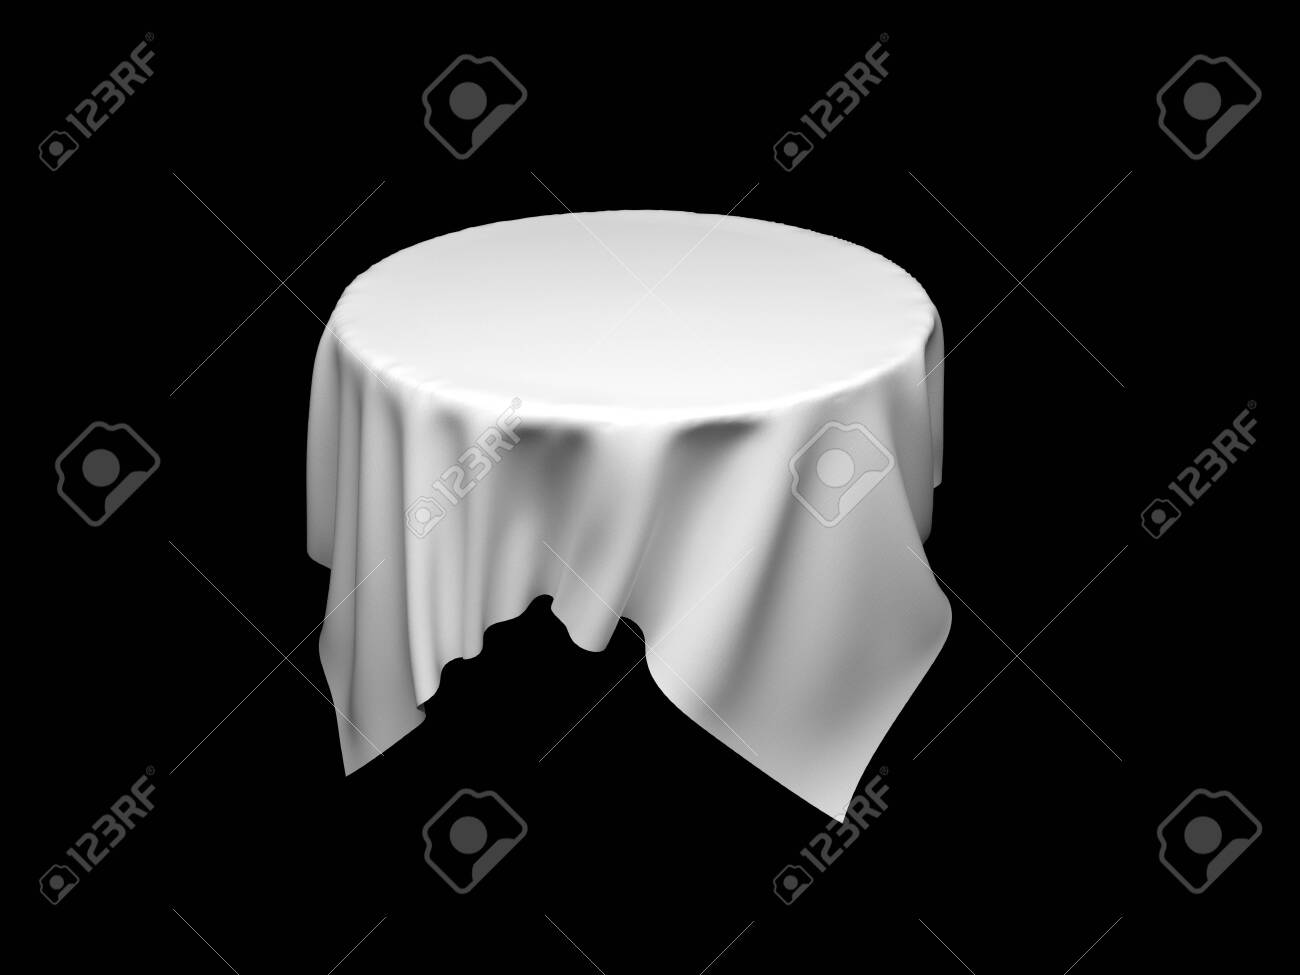 White tablecloth on invisible round table. On black background. 3d rendering illustration - 150233118